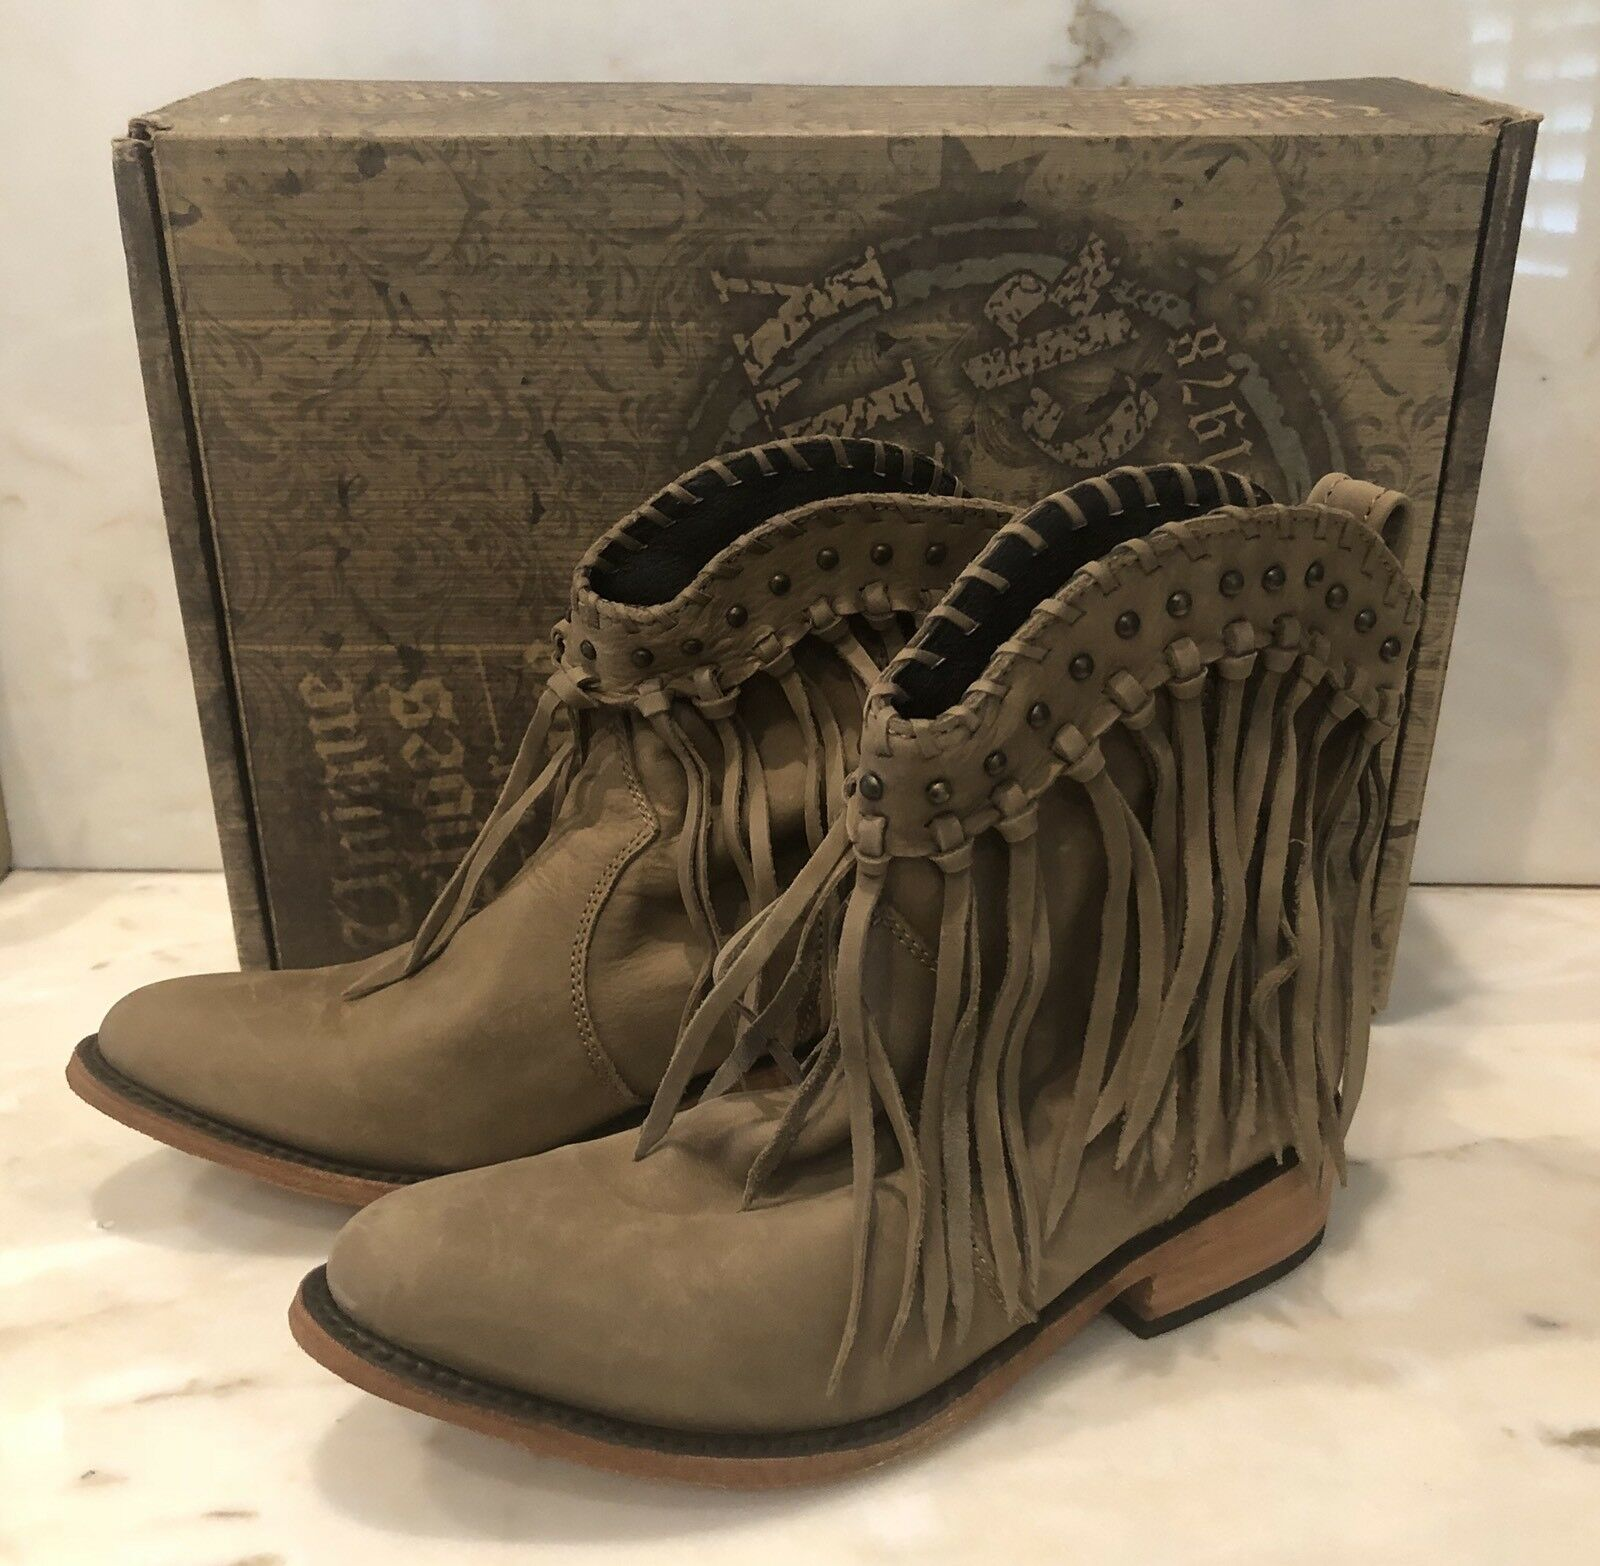 Liberty Black Fringe Womens Boots 6.5 Vegas Taupe SULB-713303 C retail  280 NEW